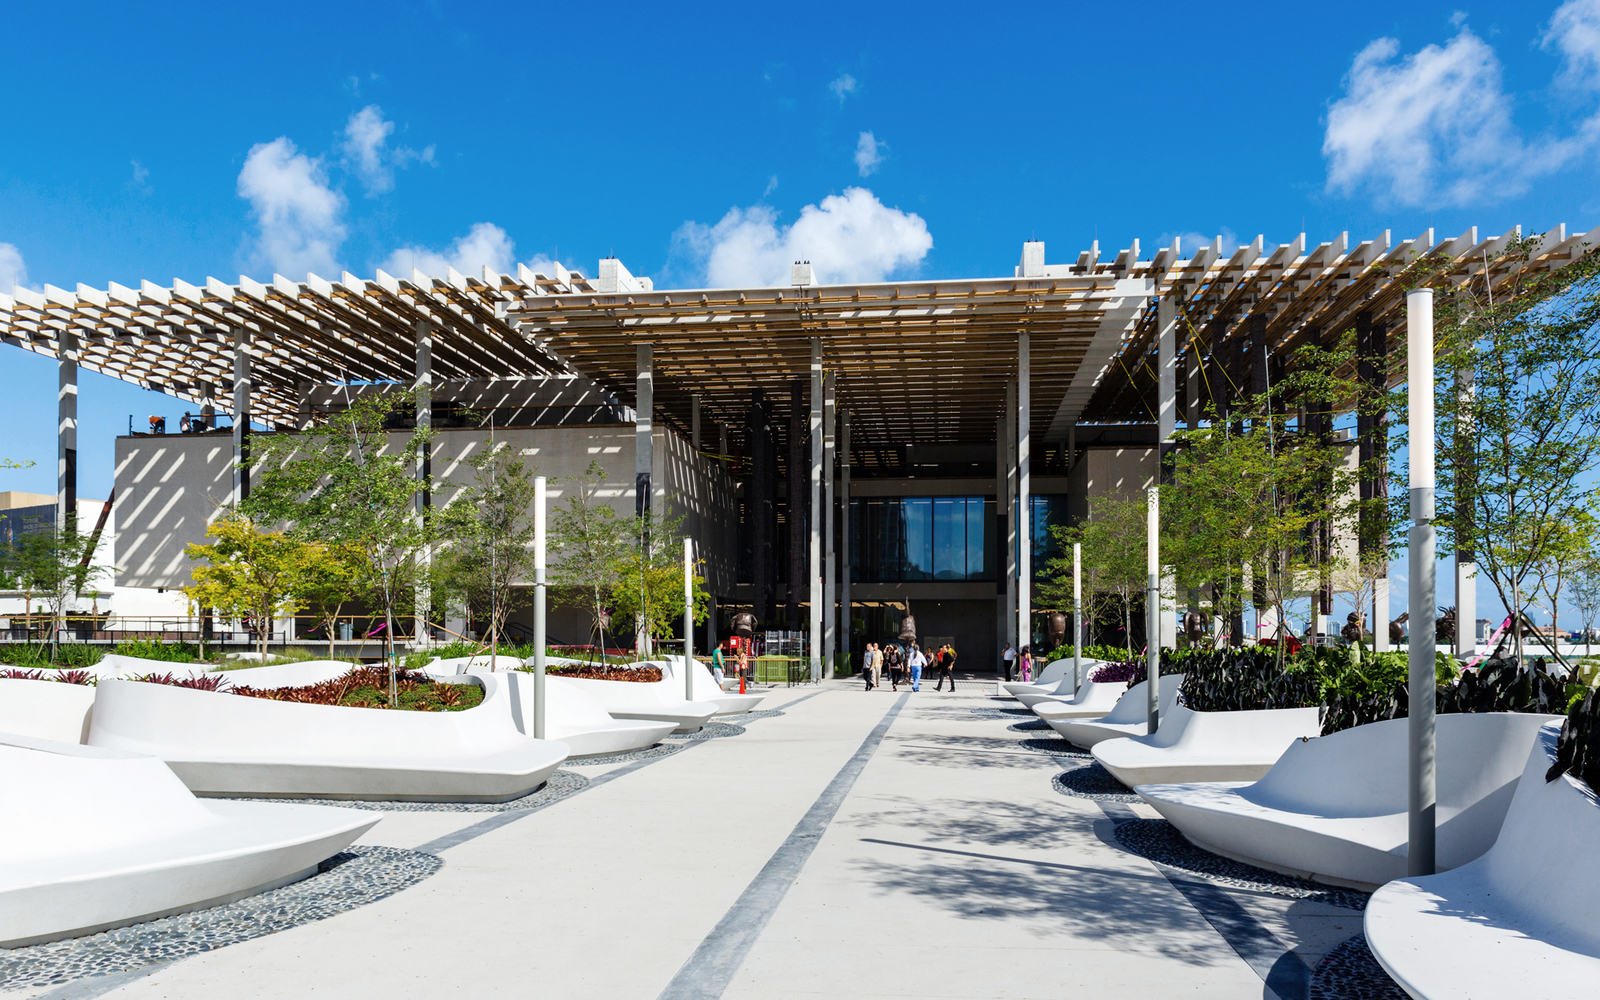 P 233 Rez Art Museum Miami Travel Leisure